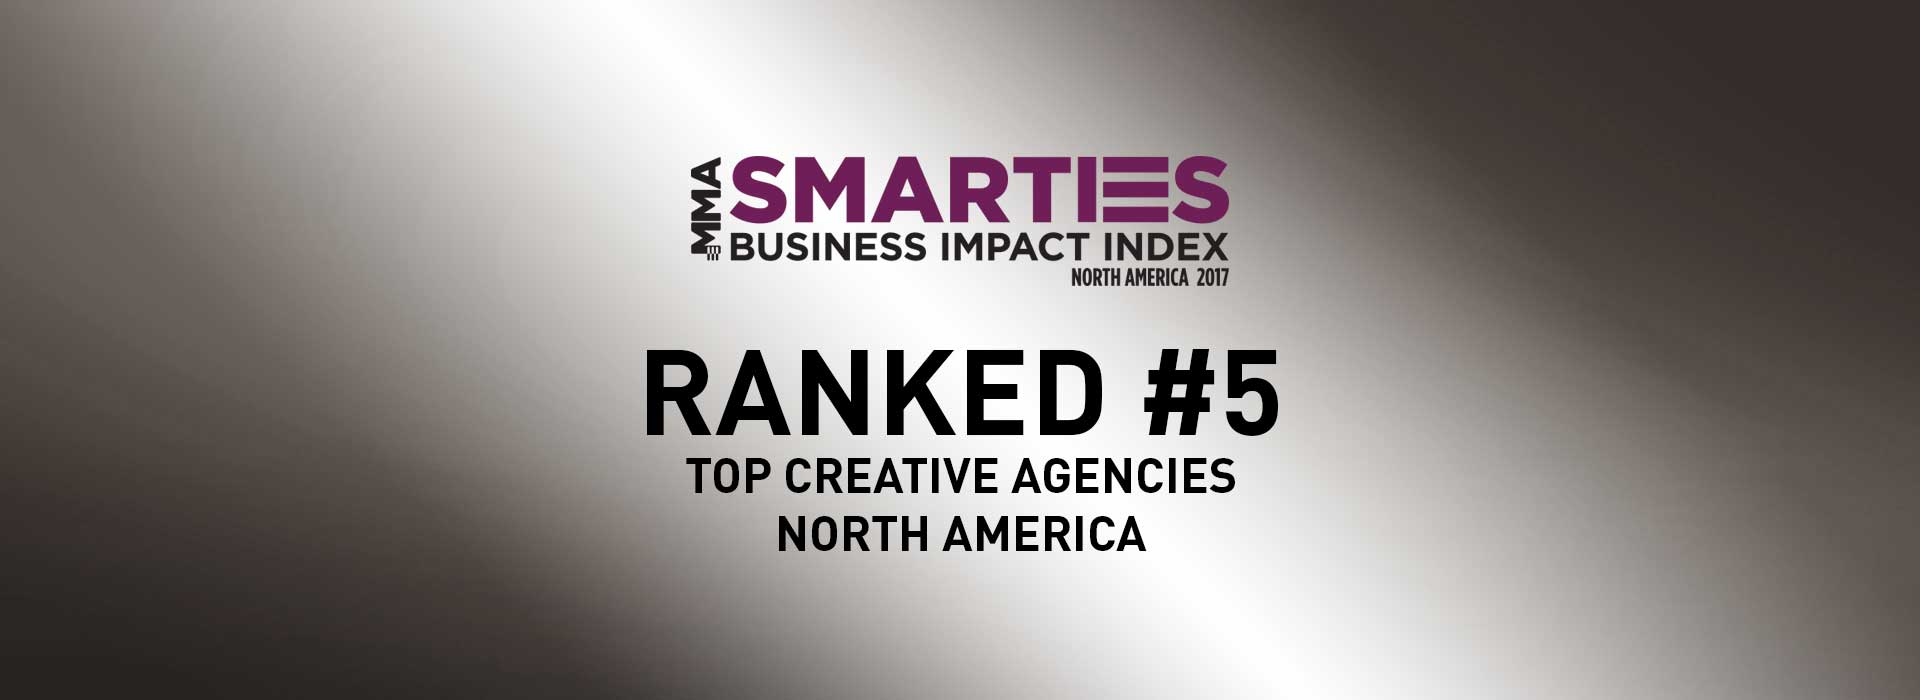 MMA Smarties Business Impact Ranking